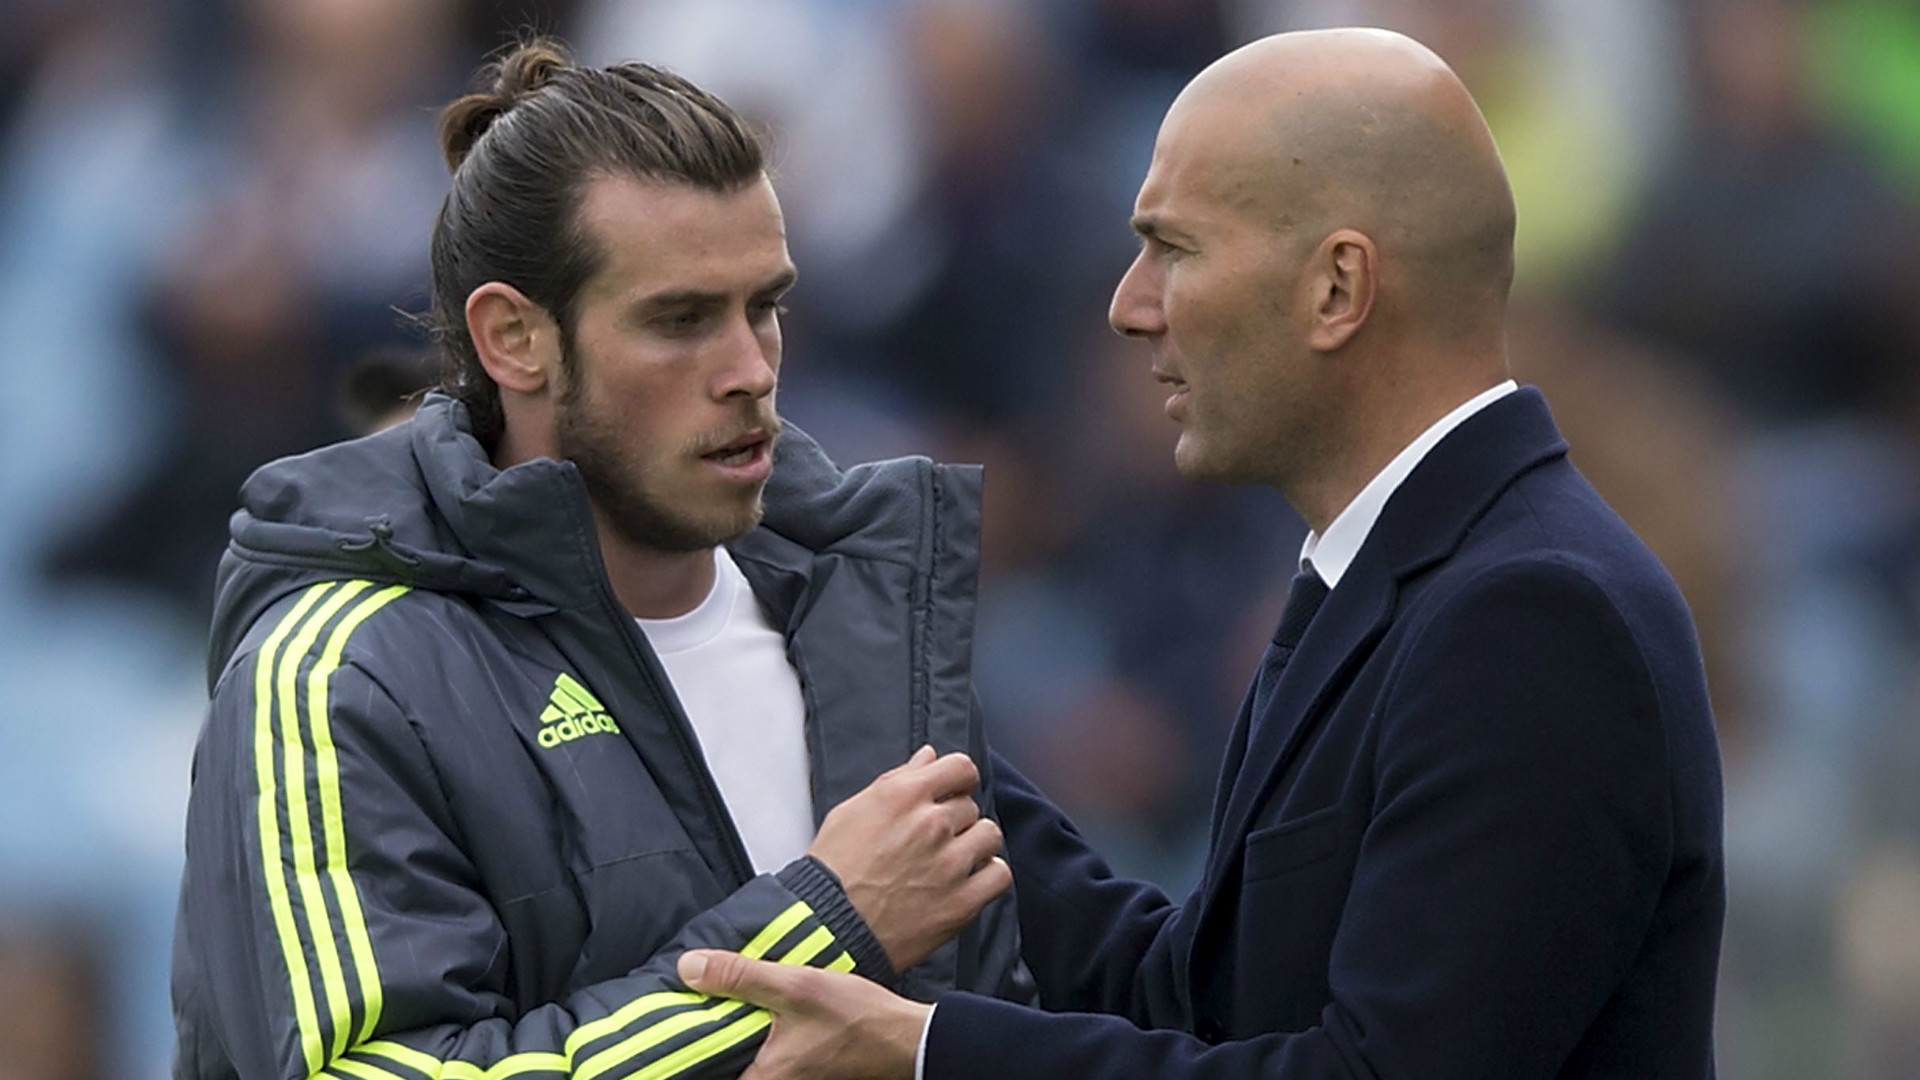 'Bale will not leave Real Madrid on loan' - Agent shuts down talk of 'makeshift' deal